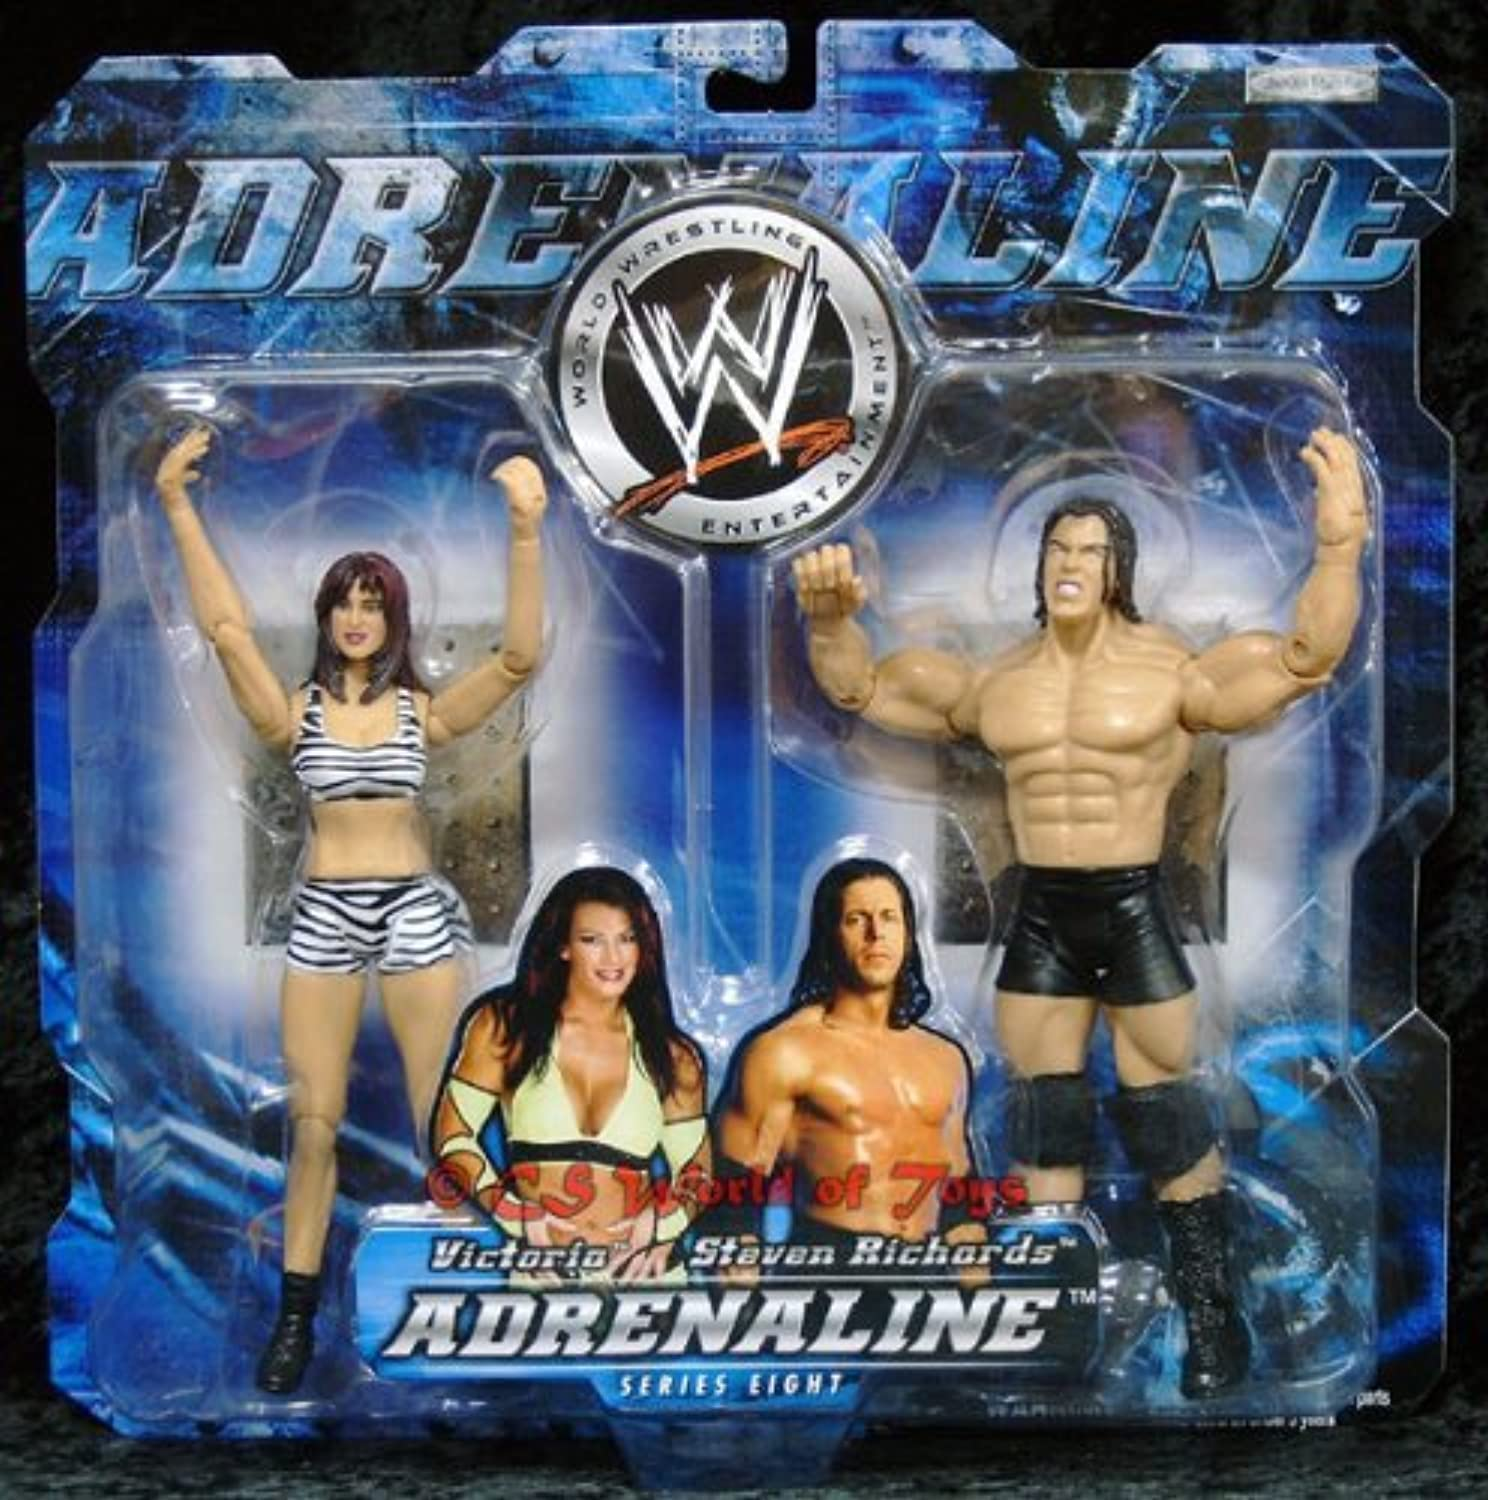 World Wrestling Adrenaline Series Eight  Victoria & Steven Richards Aktion Figuren by Adrenaline